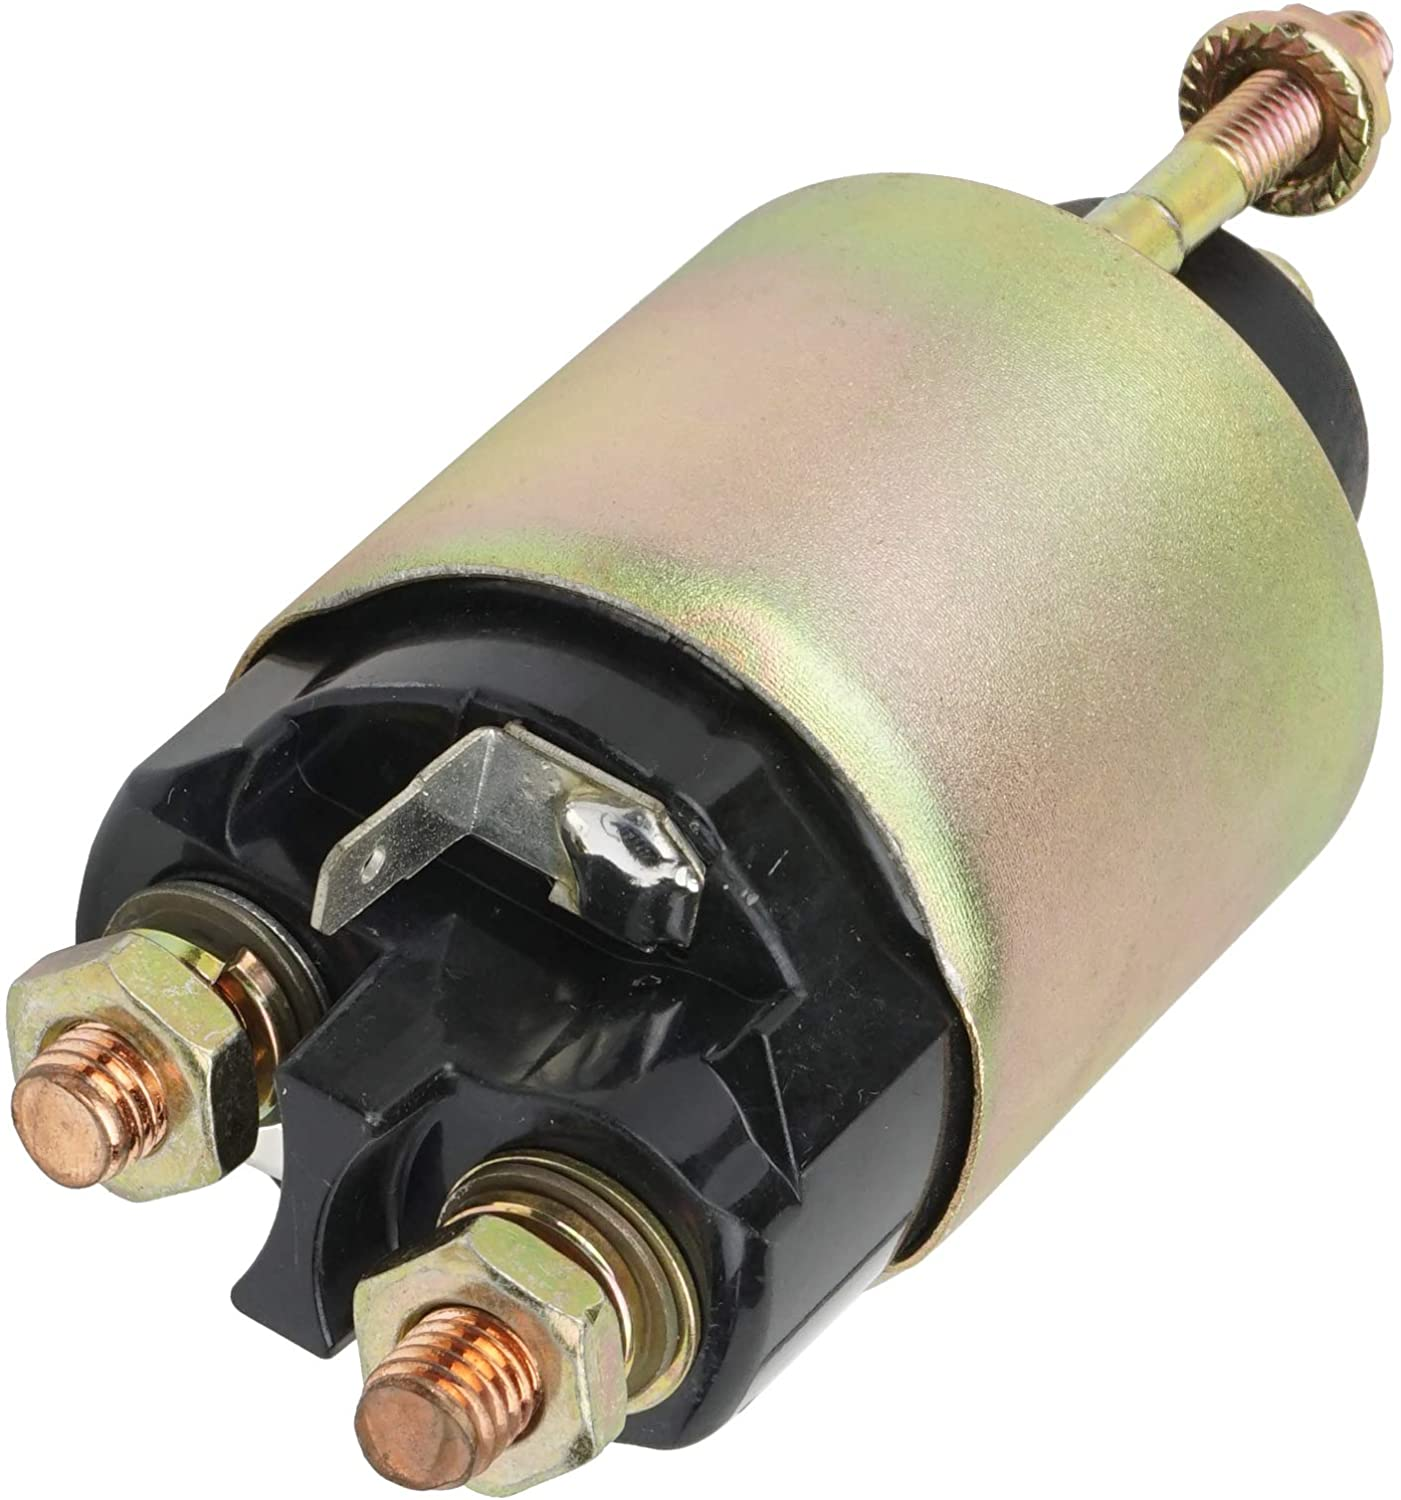 Max 68% OFF Caltric compatible with Starter Solenoid Mower Max 80% OFF F2260 F256 Kubota